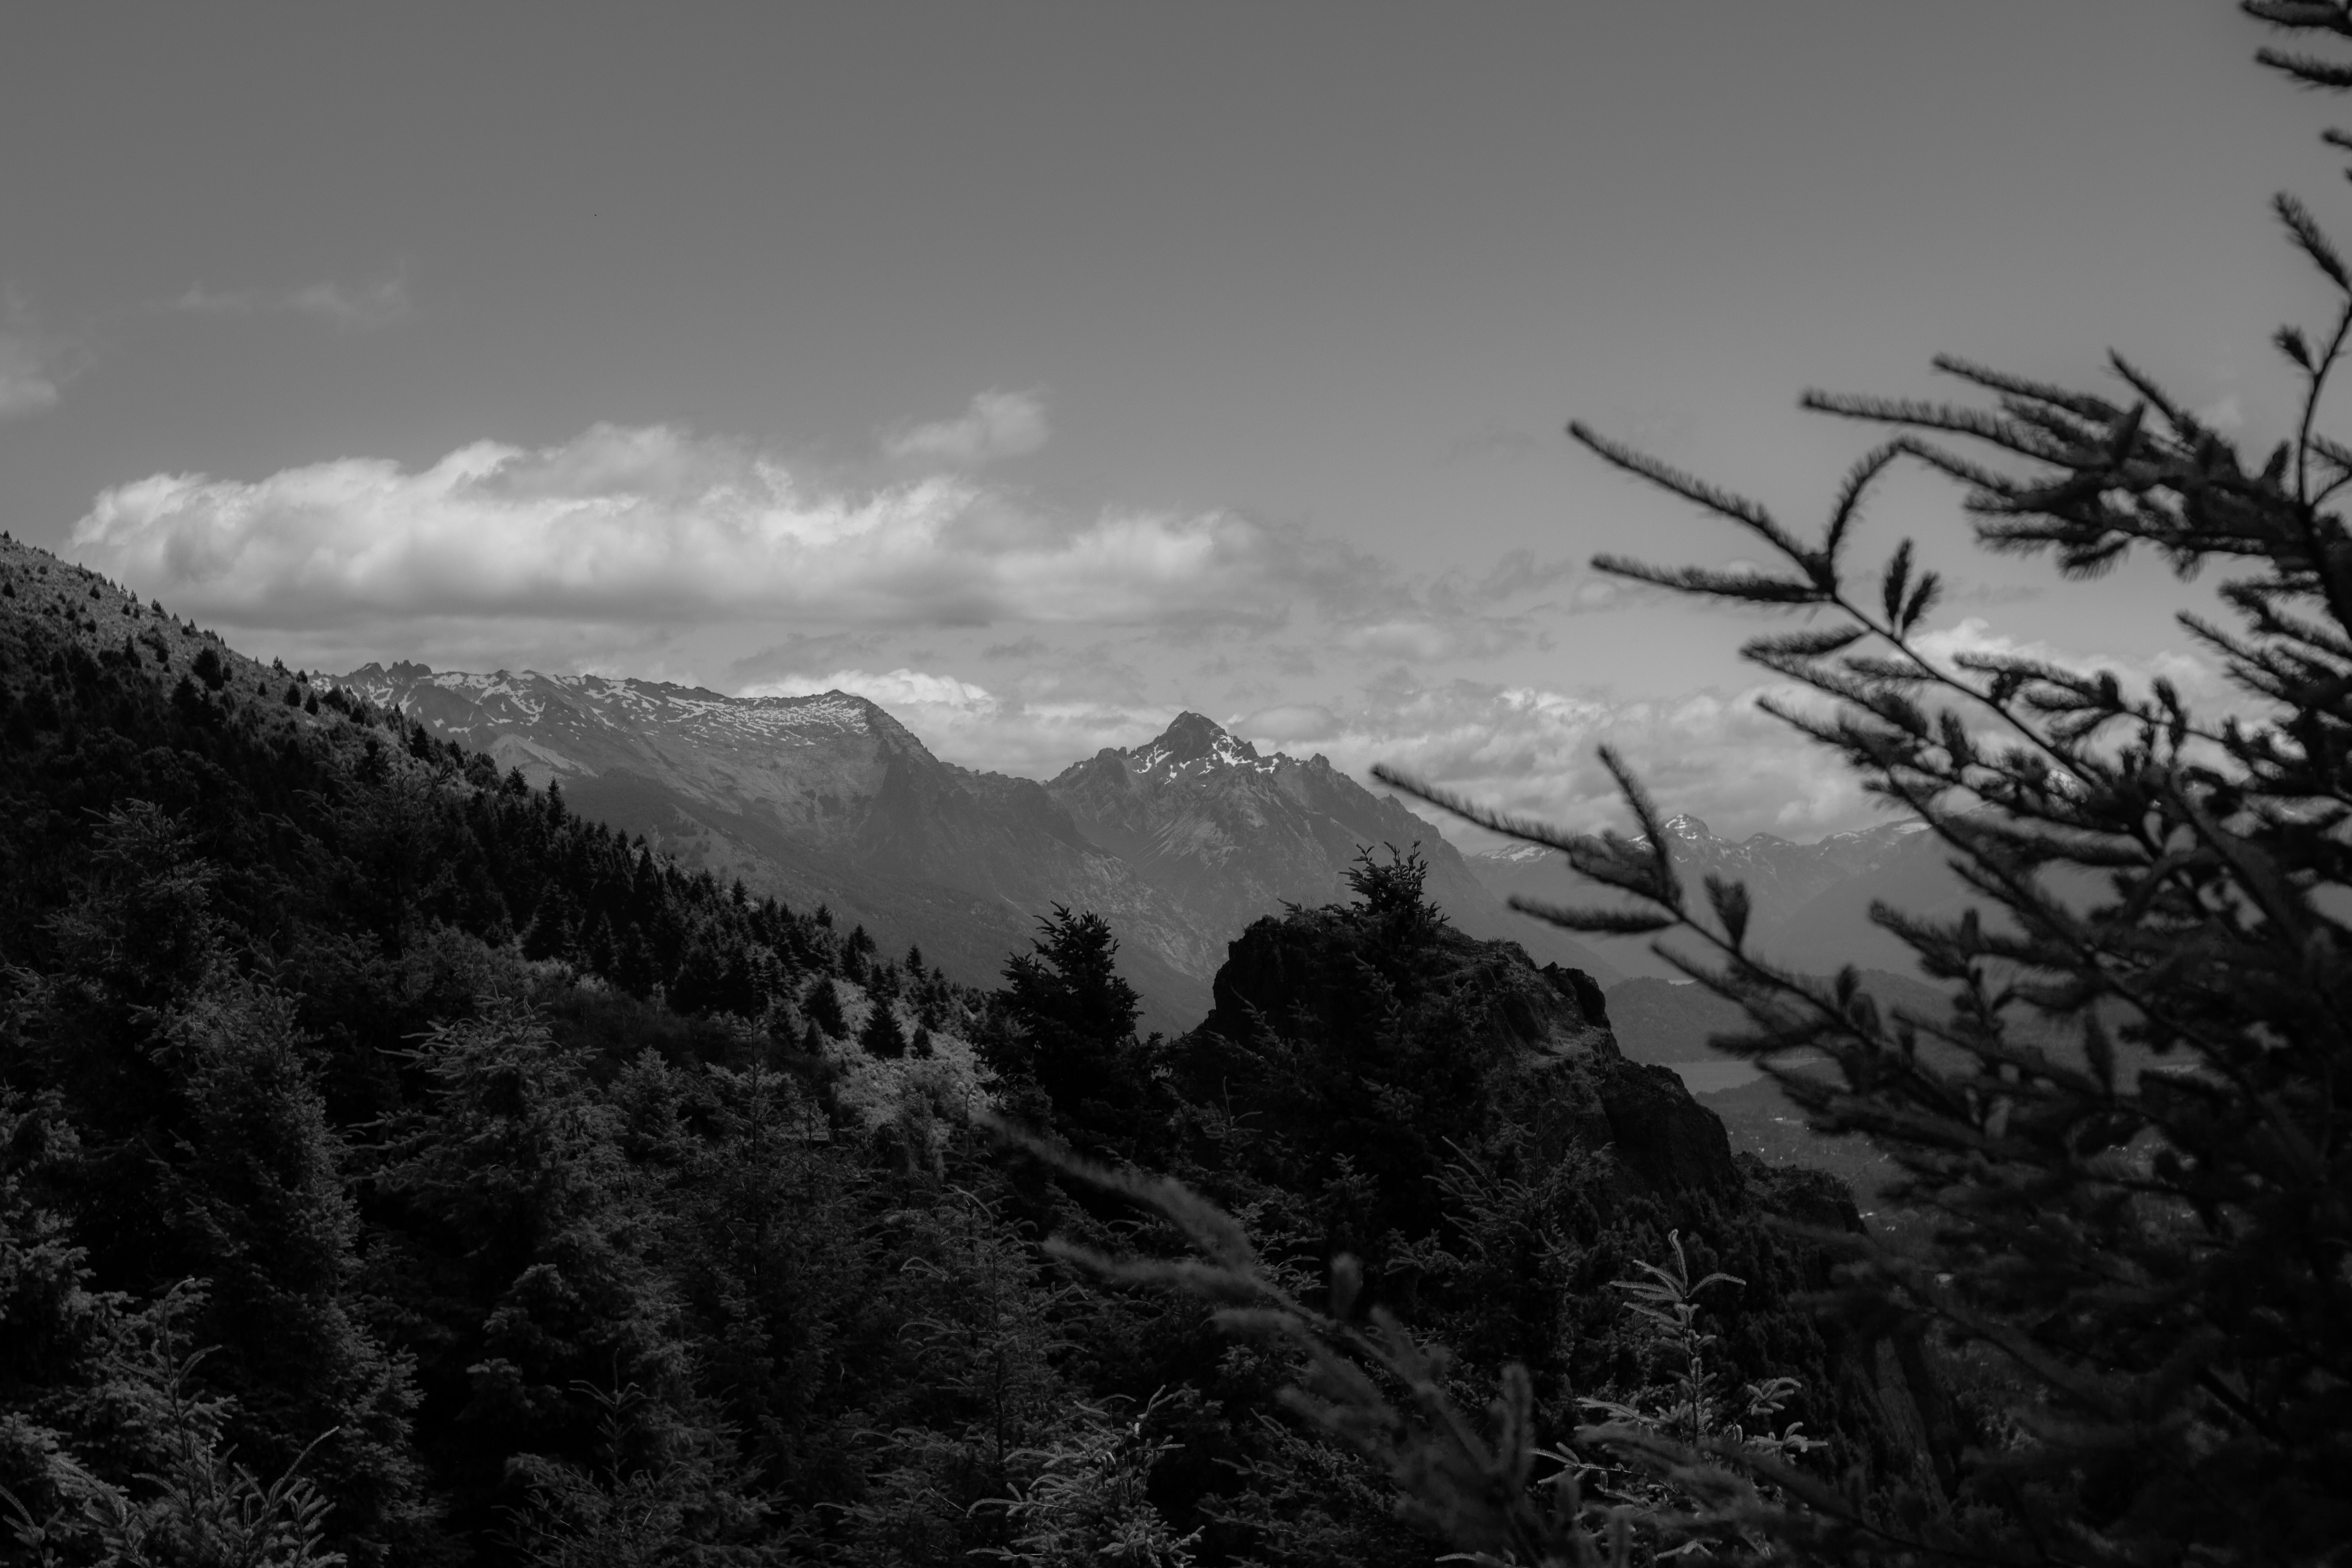 grayscale photo of mountain